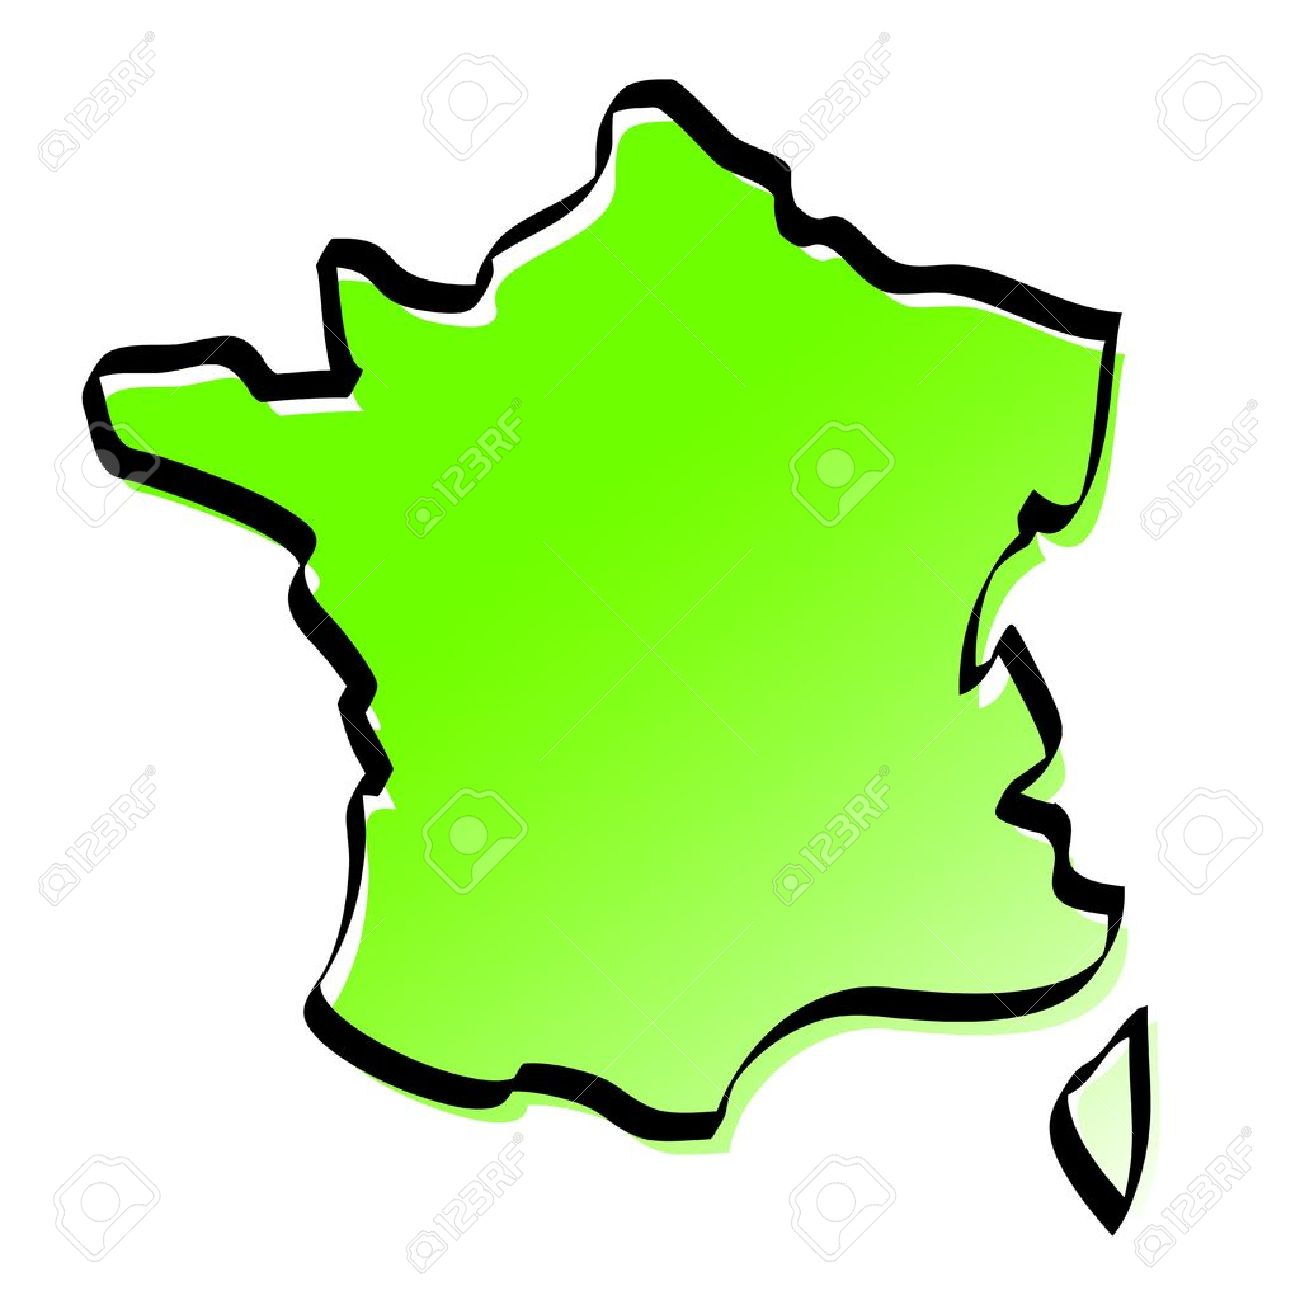 Stylized Map Of France Royalty Free Cliparts, Vectors, And Stock.